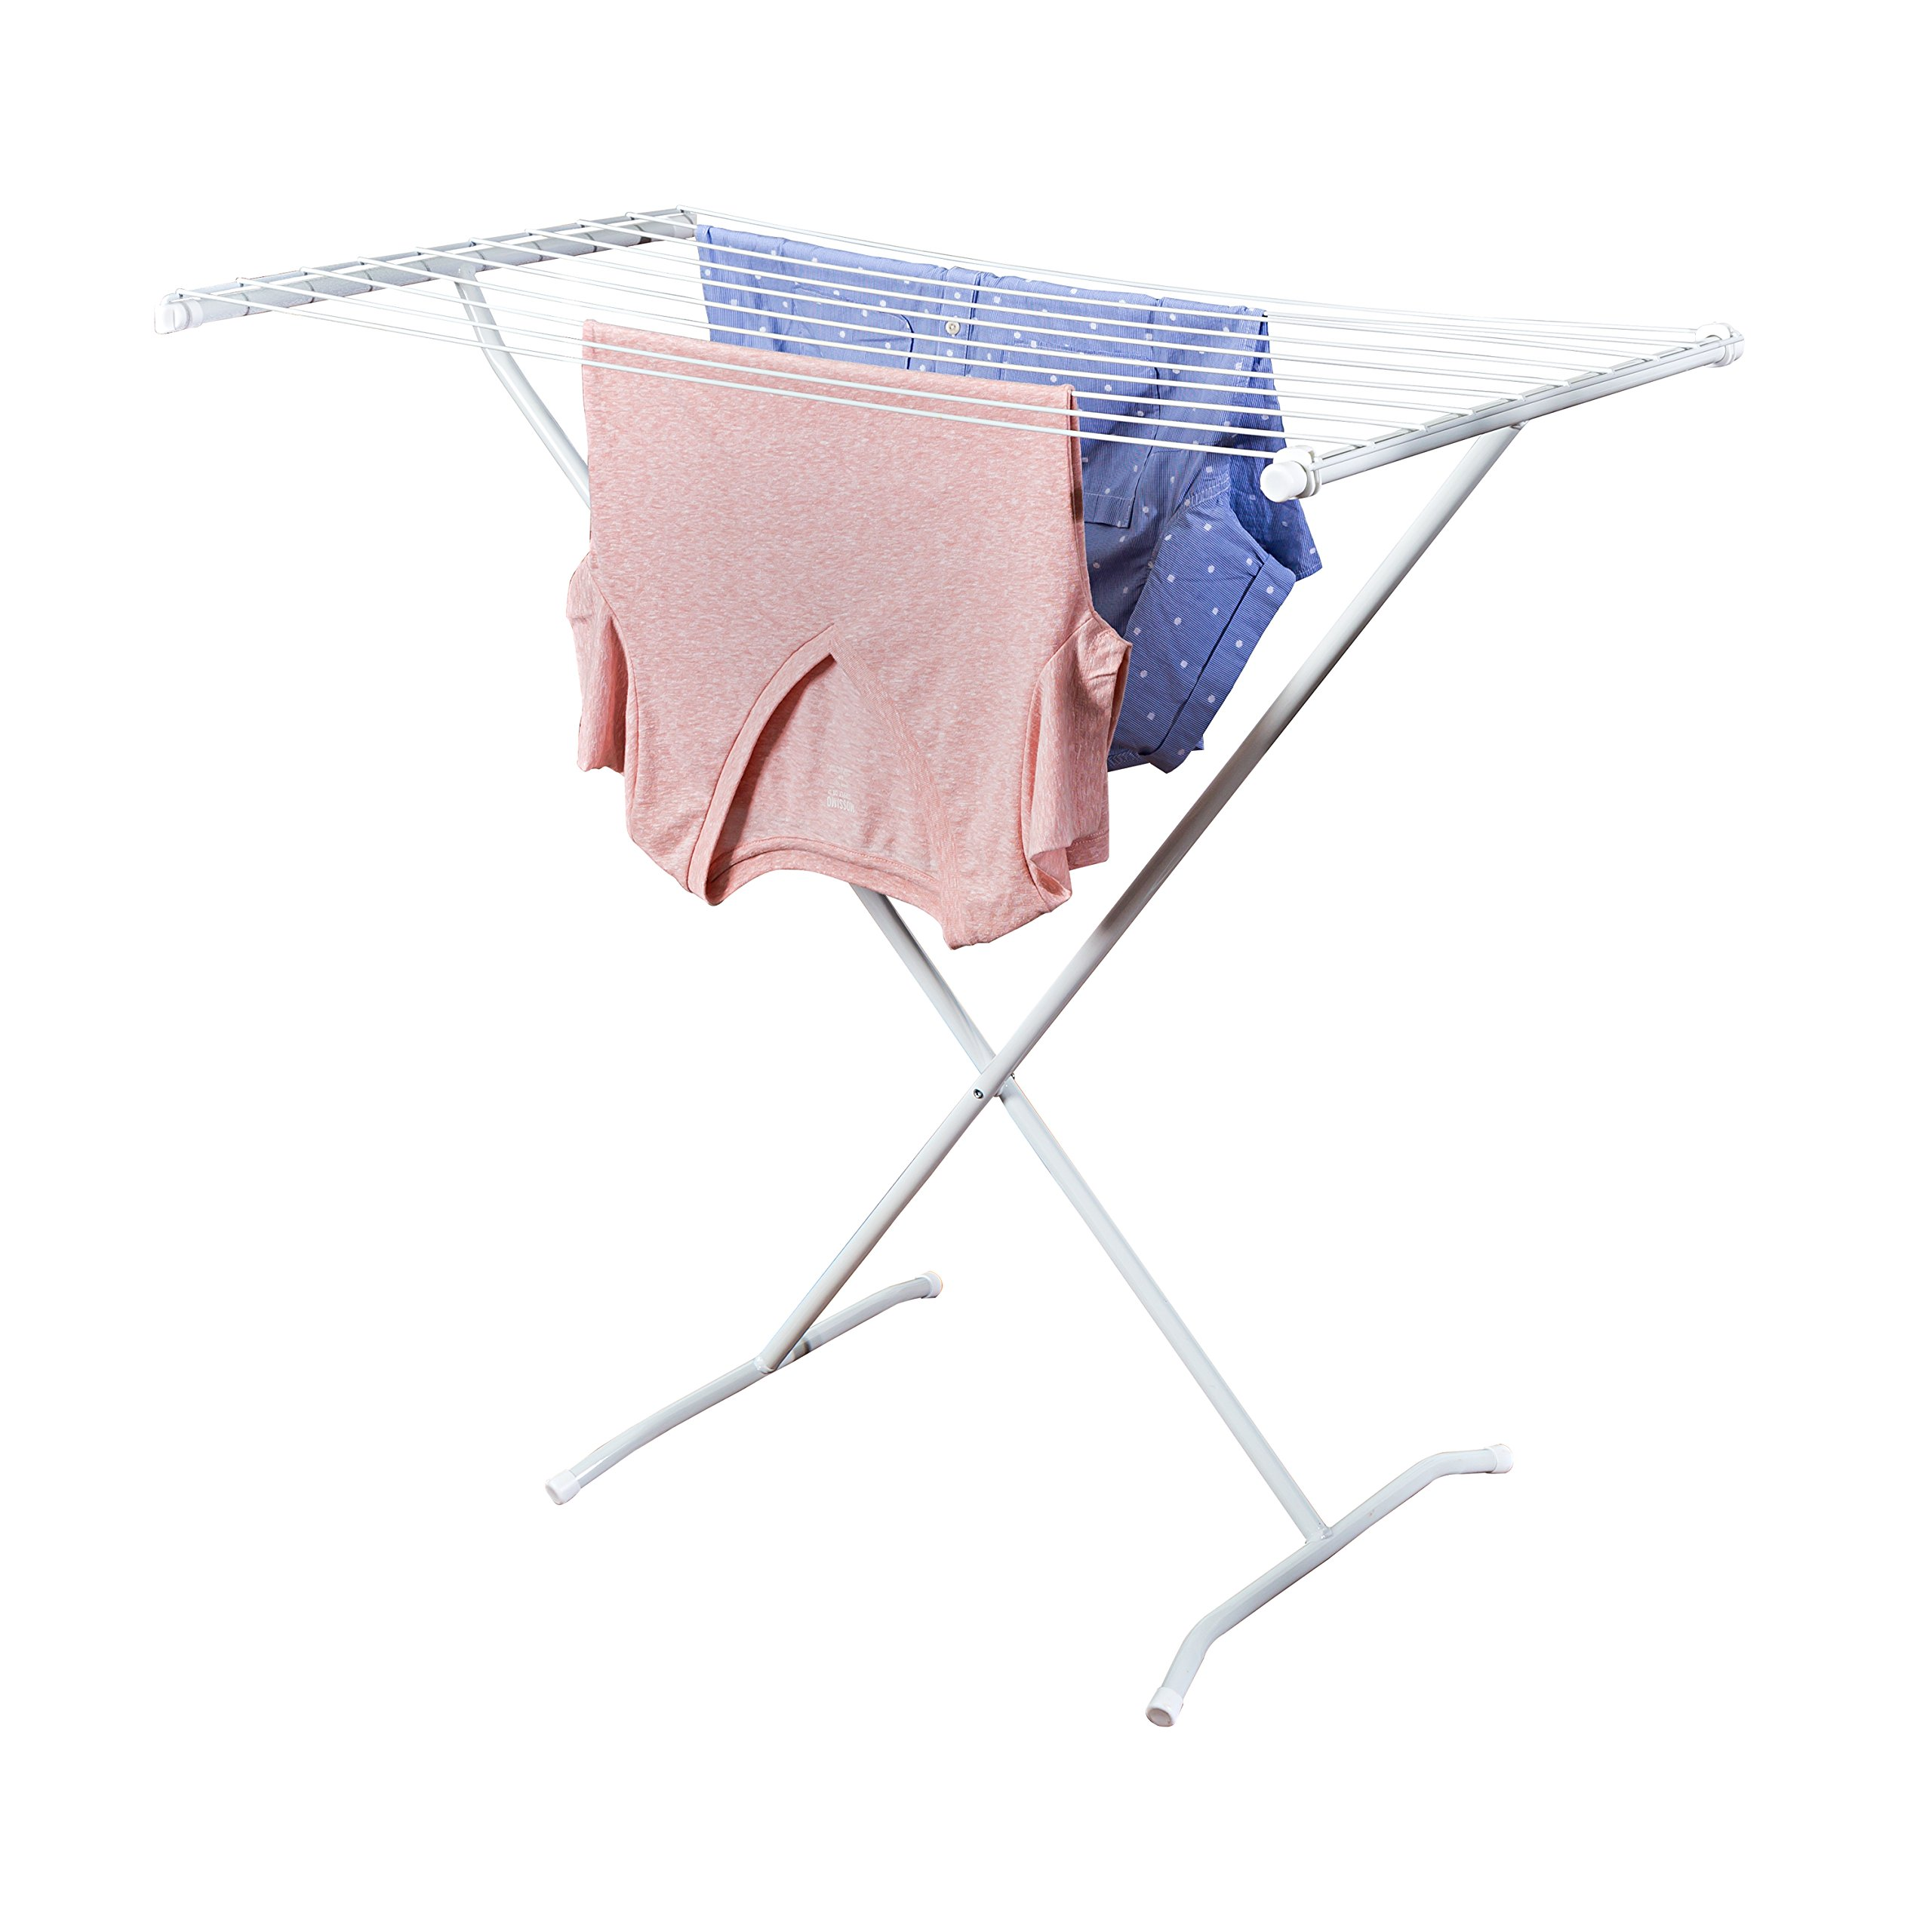 Honey-Can-Do Metal Folding Drying Rack, X-Frame Design